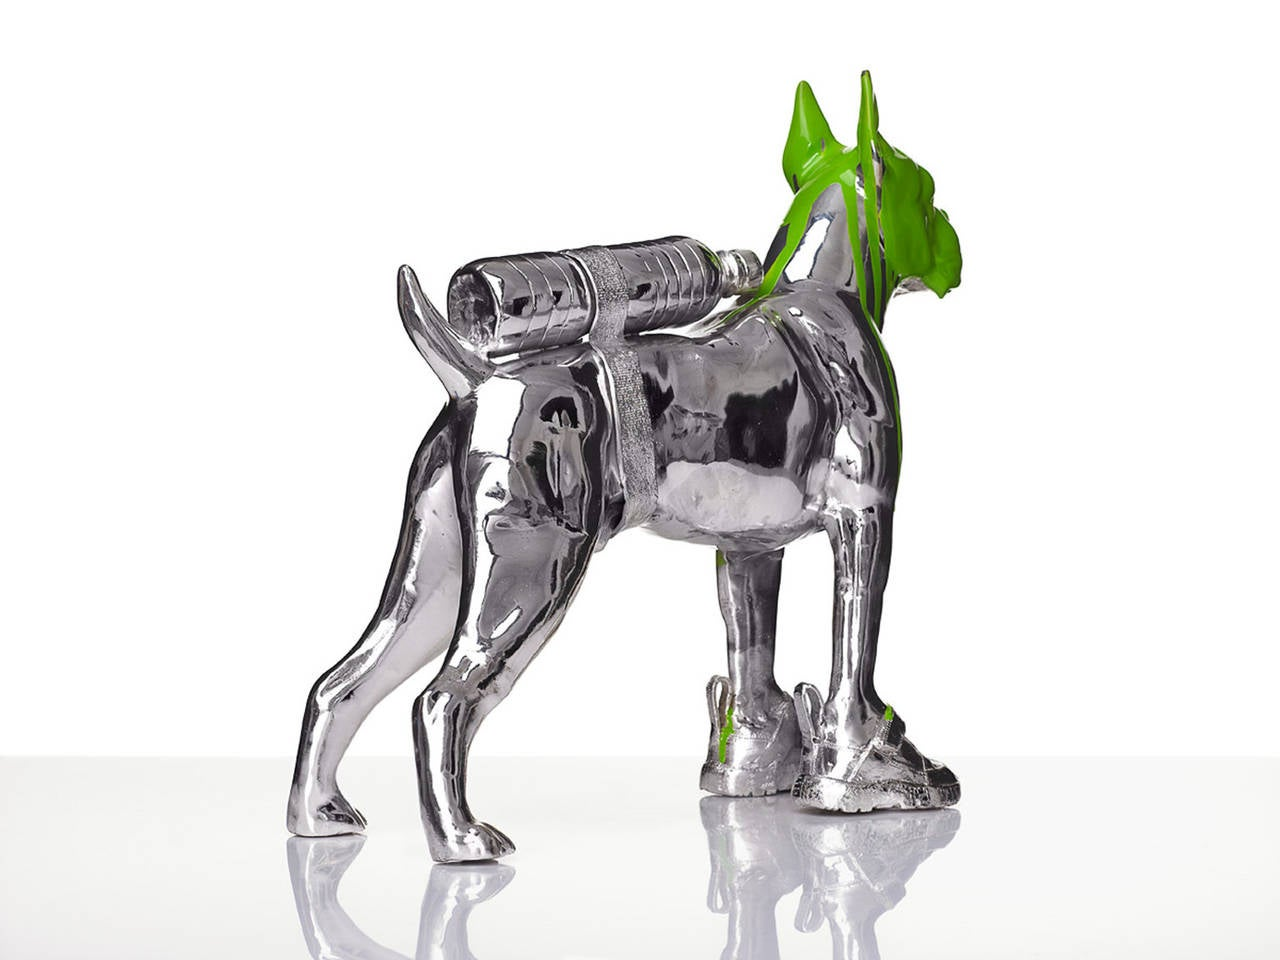 Cloned Bulldog with pet bottle. 1